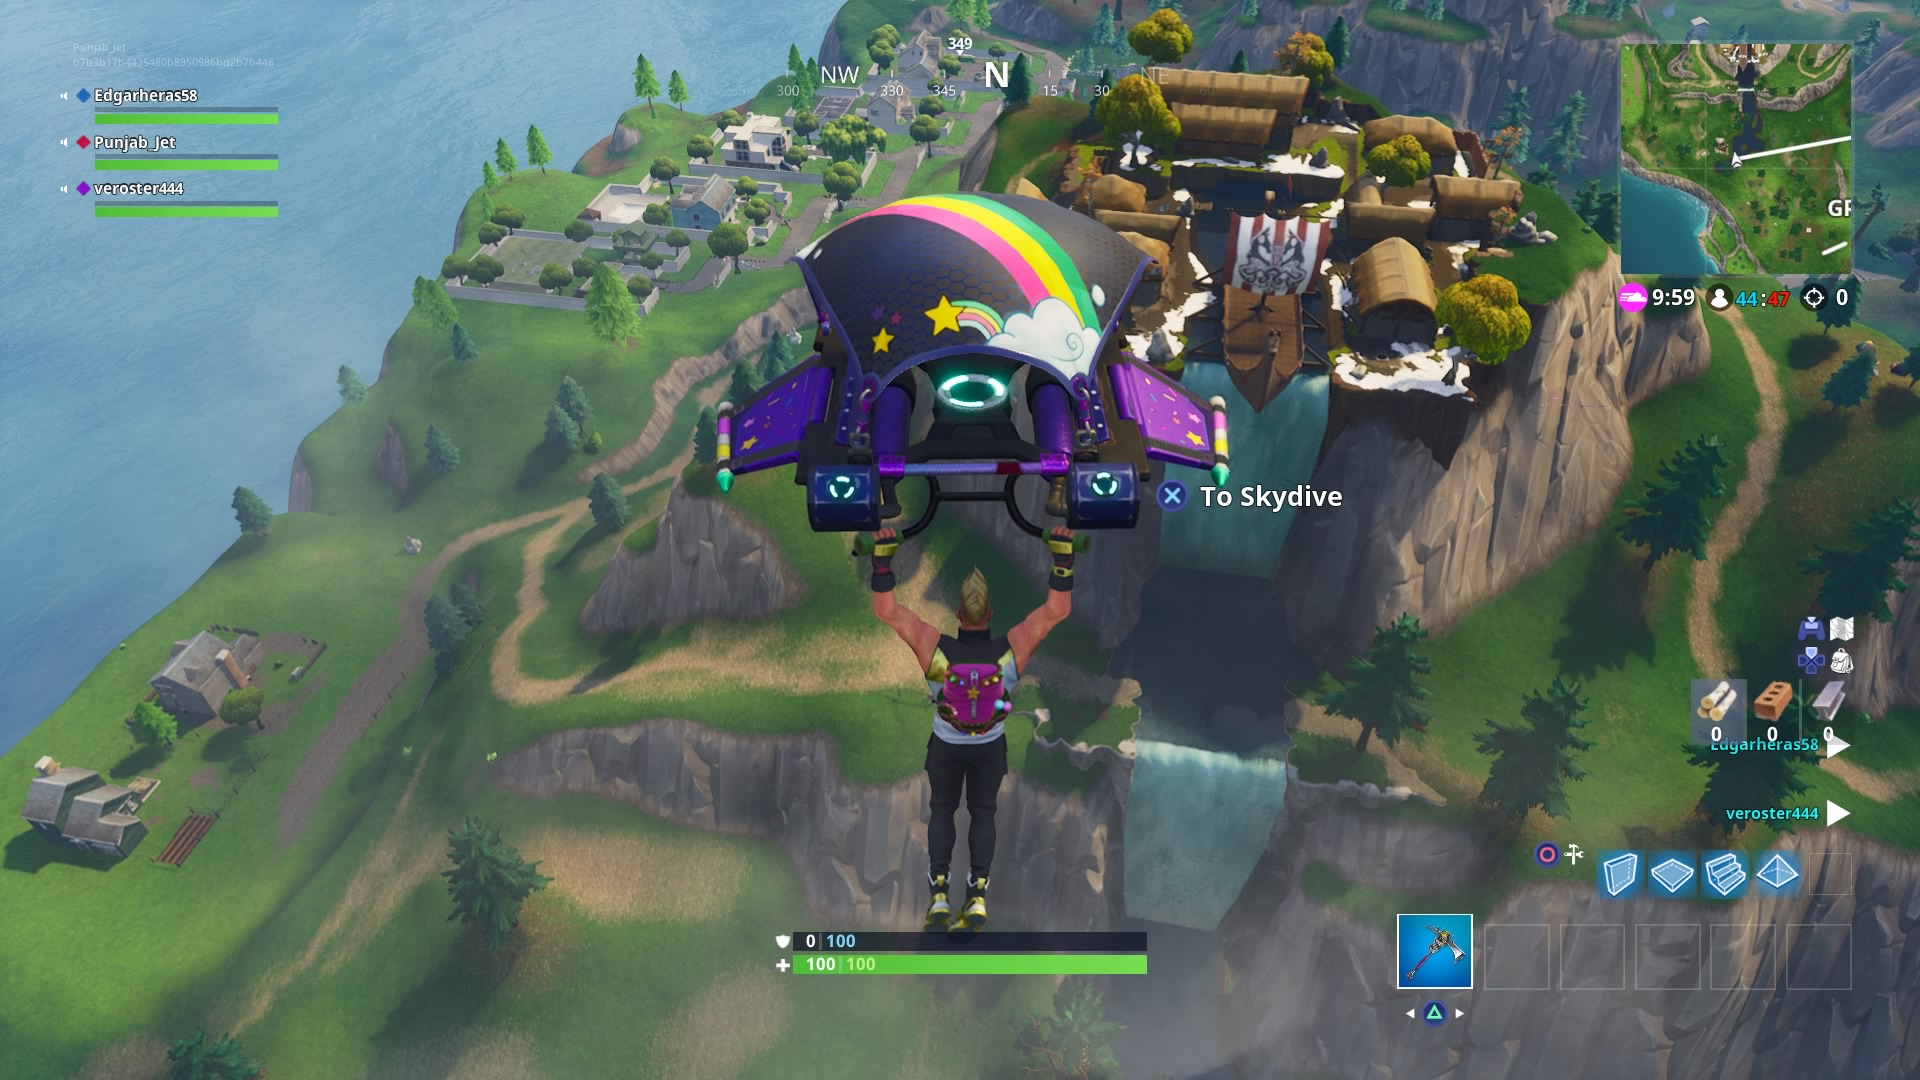 fortnite rainbow glider wallpaper 64501